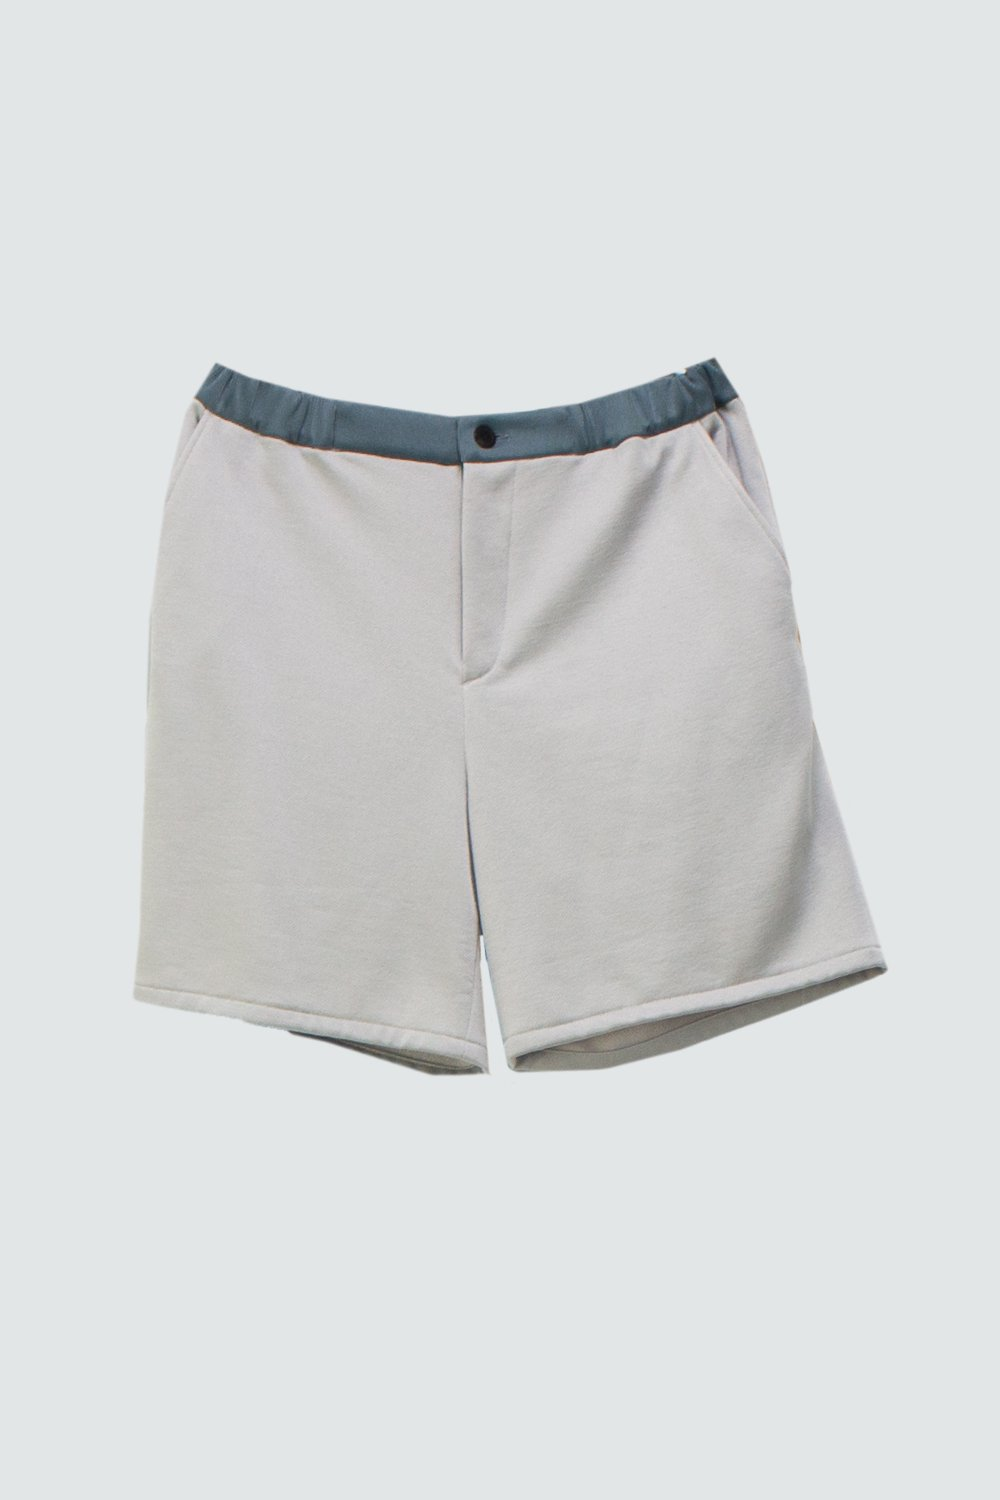 <img class='new_mark_img1' src='https://img.shop-pro.jp/img/new/icons8.gif' style='border:none;display:inline;margin:0px;padding:0px;width:auto;' />SWEAT SHORT PANTS L.GREY